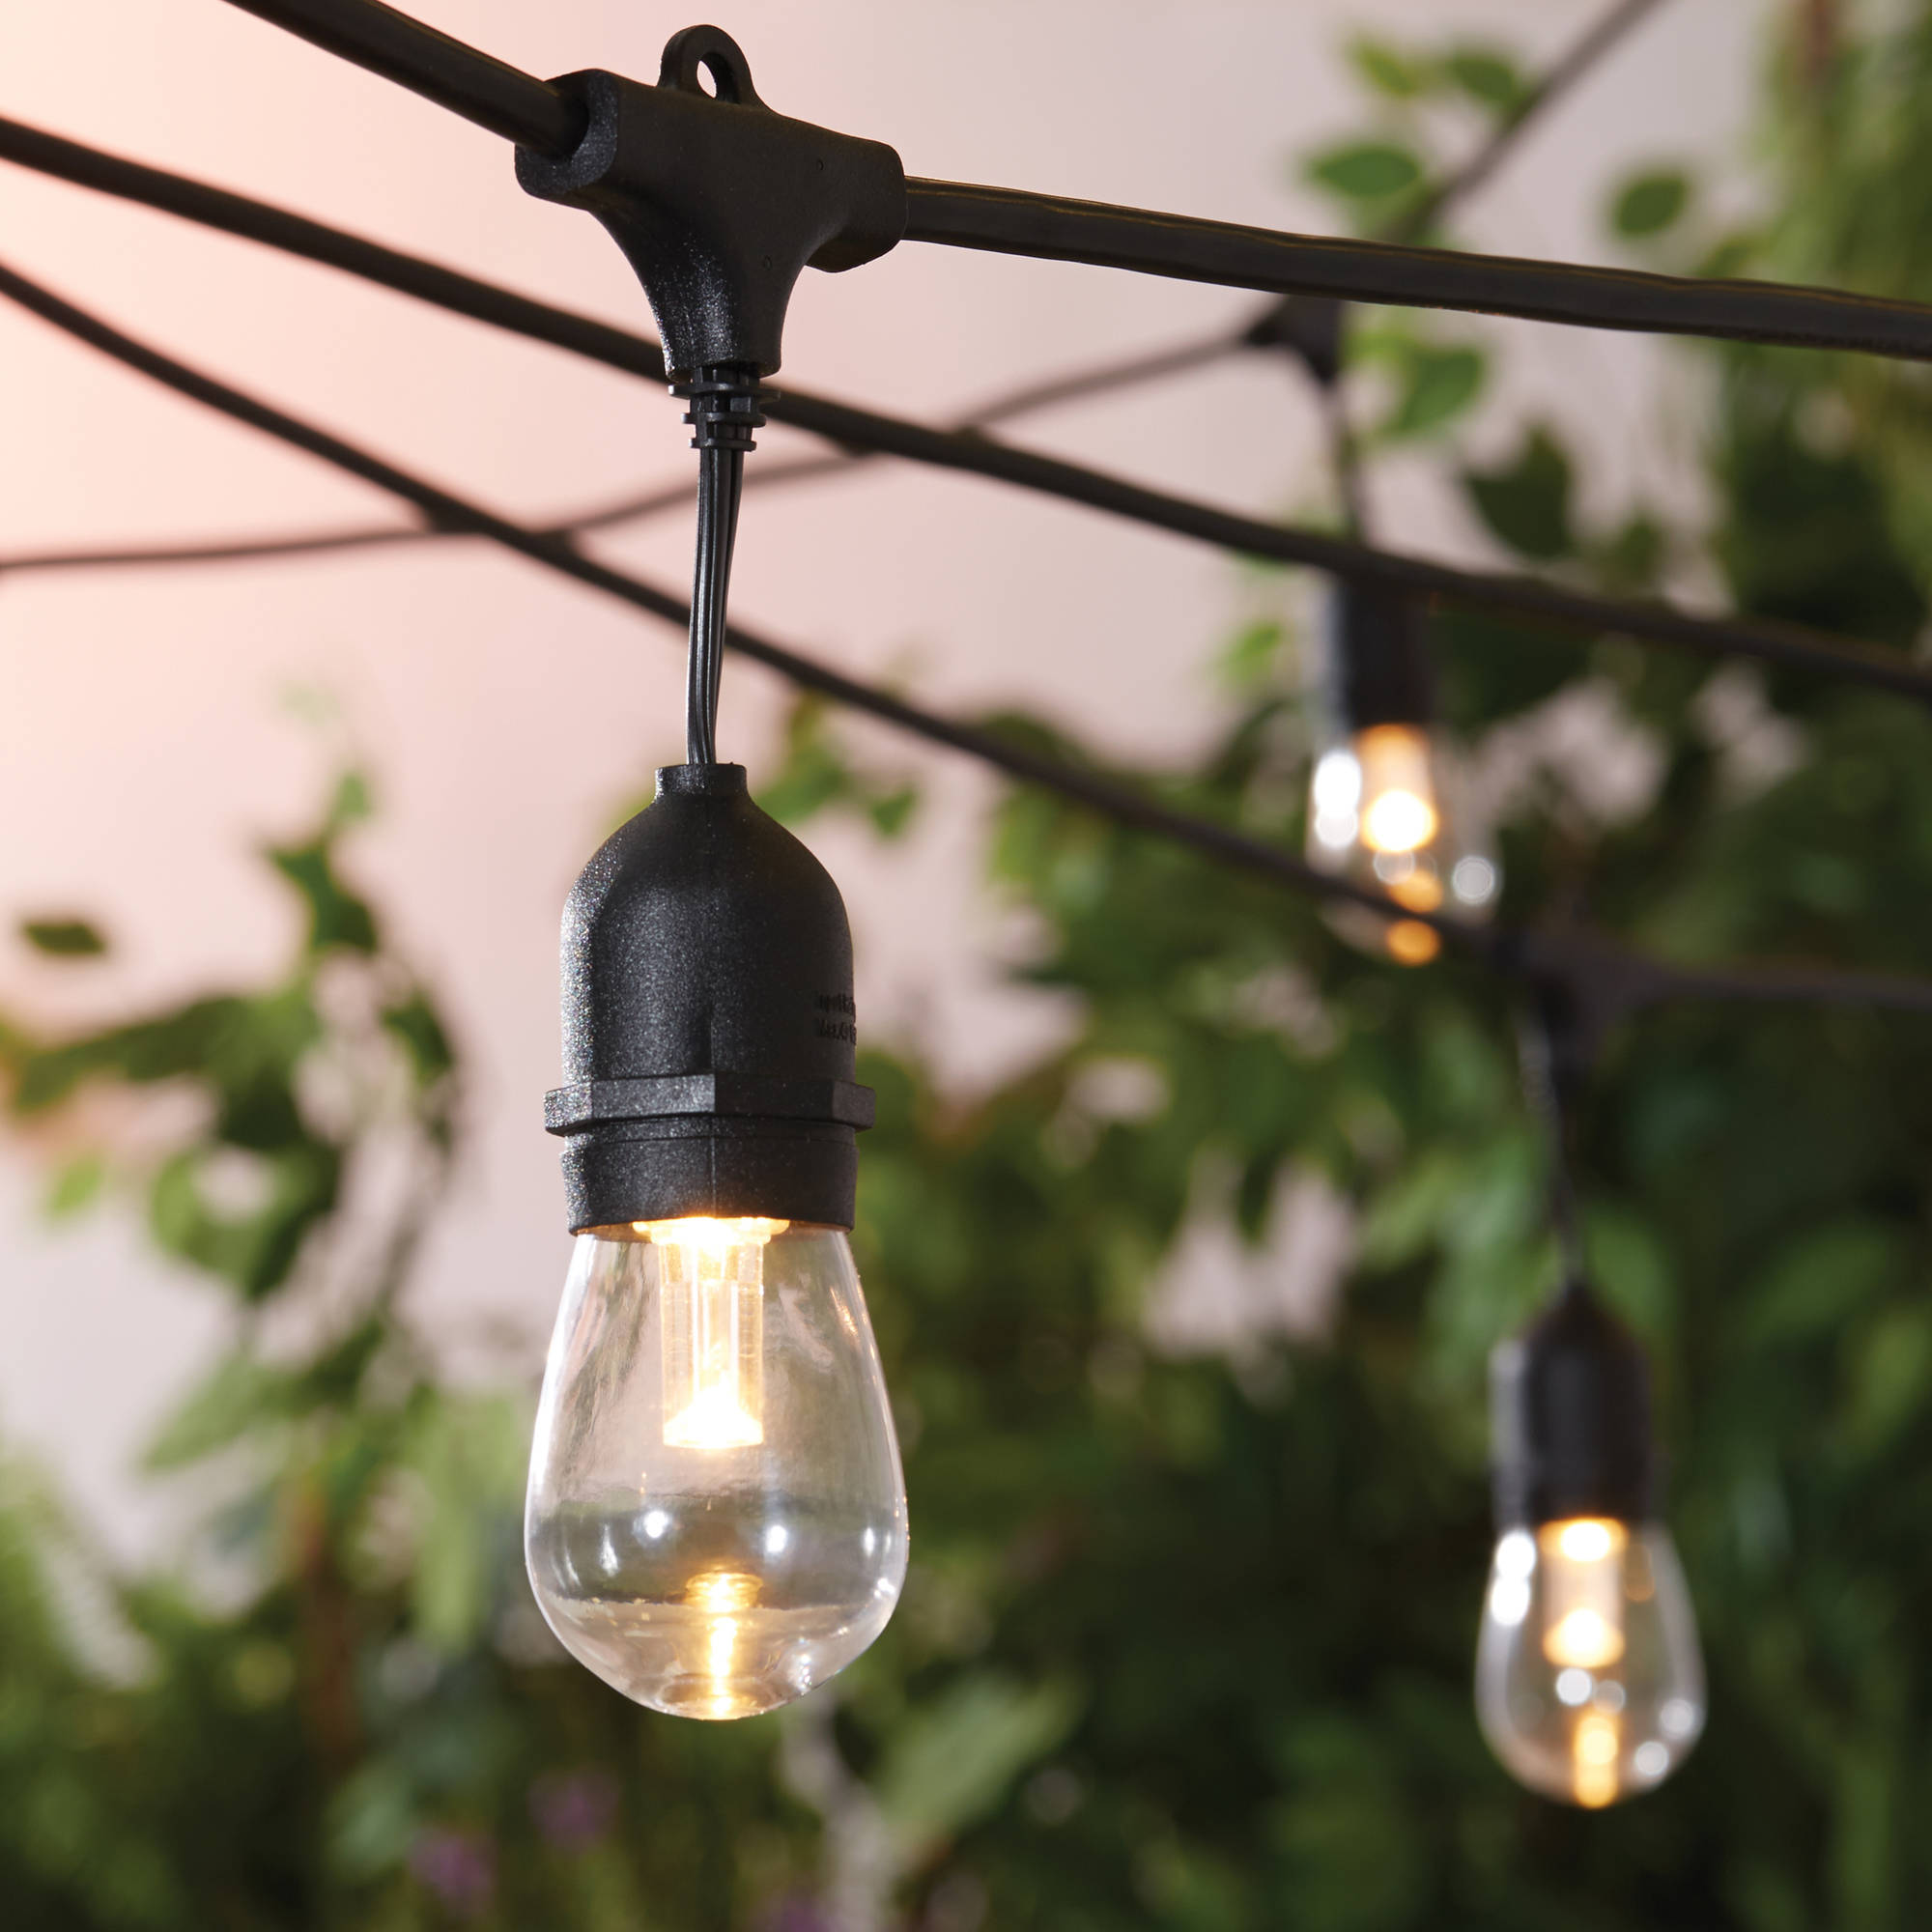 Better Homes and Gardens Outdoor LED Cafe String Lights